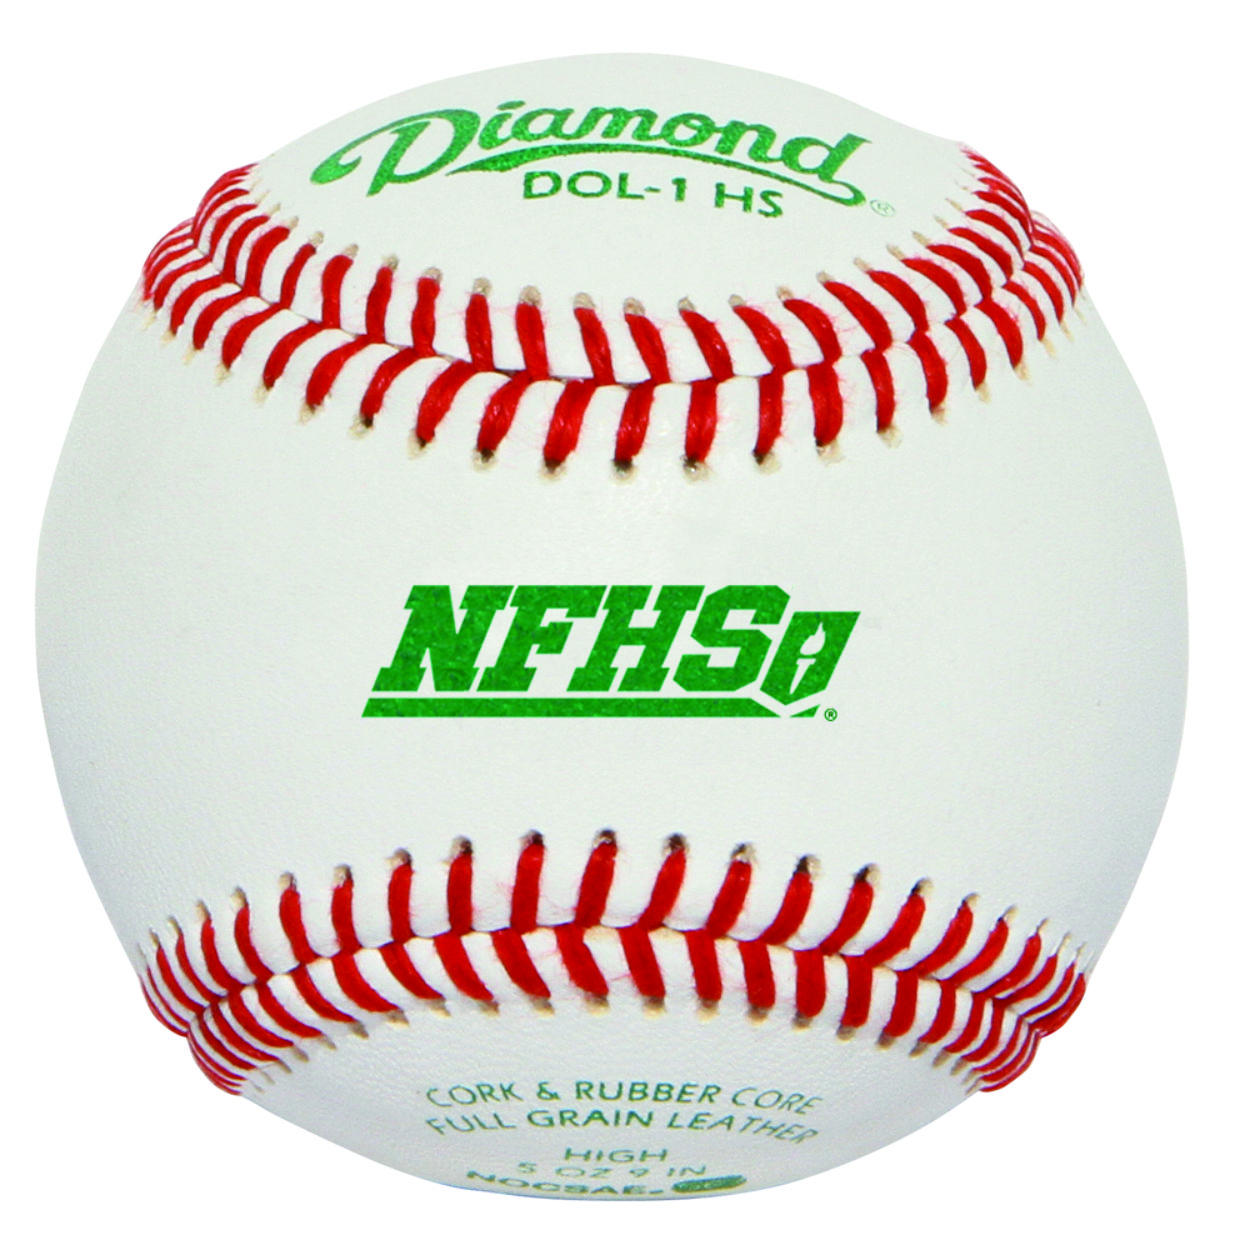 Diamond DOL-1 HS Official League Leather Baseballs